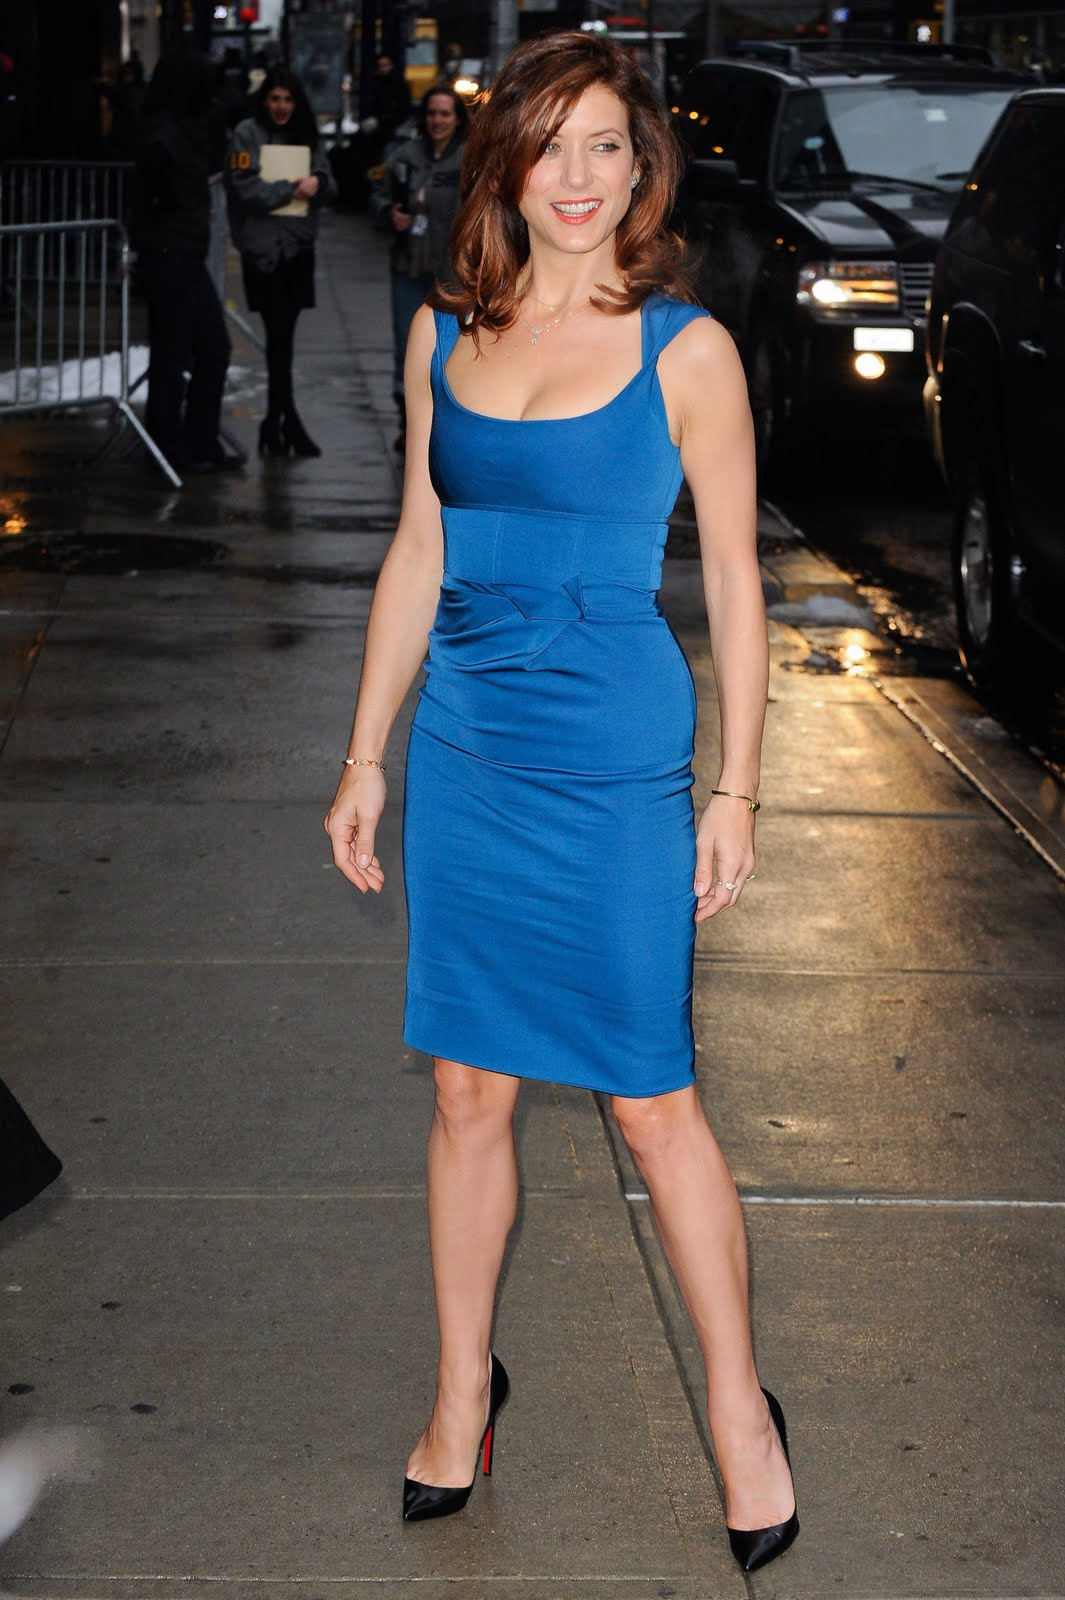 http://3.bp.blogspot.com/-8TVsH9NvxY4/TYvA2pM3WqI/AAAAAAAAG7k/hbcK4DwpFQg/s1600/Kate_Walsh_outside_Ed_Sullivan_Theater_for_Letterman_033_122_42lo.jpg